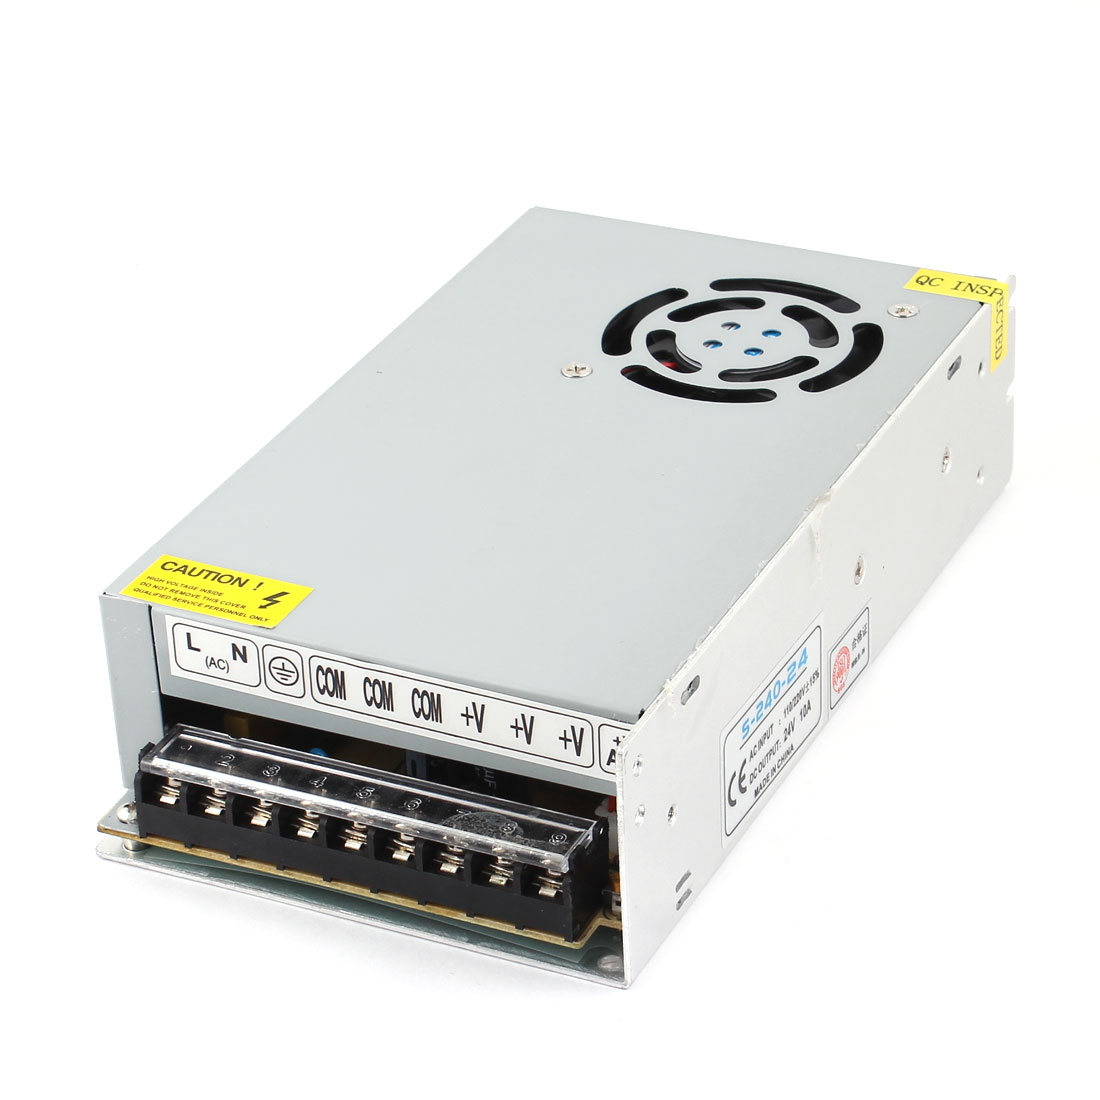 Circuit Protection Switching Power Supply DC 24V 10A 240W Output